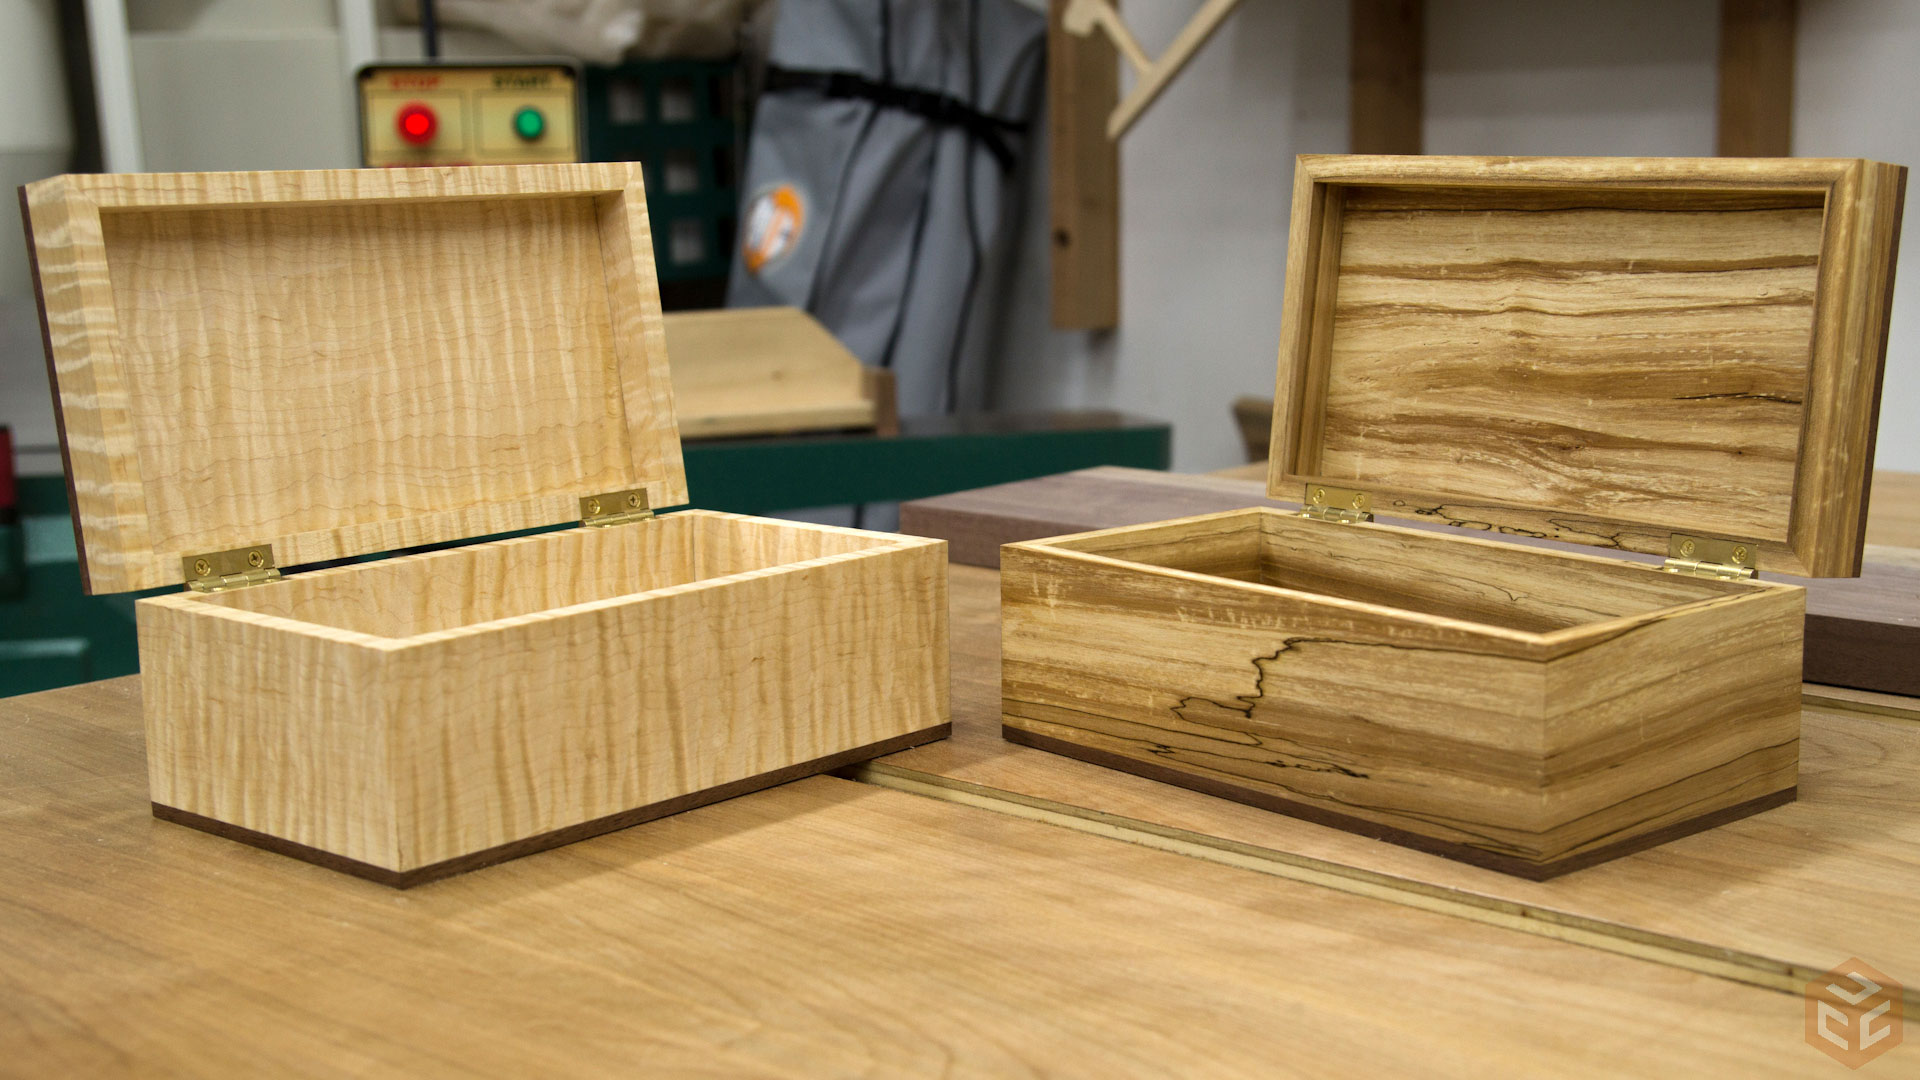 How To Make A Wooden Box Jays Custom Creations